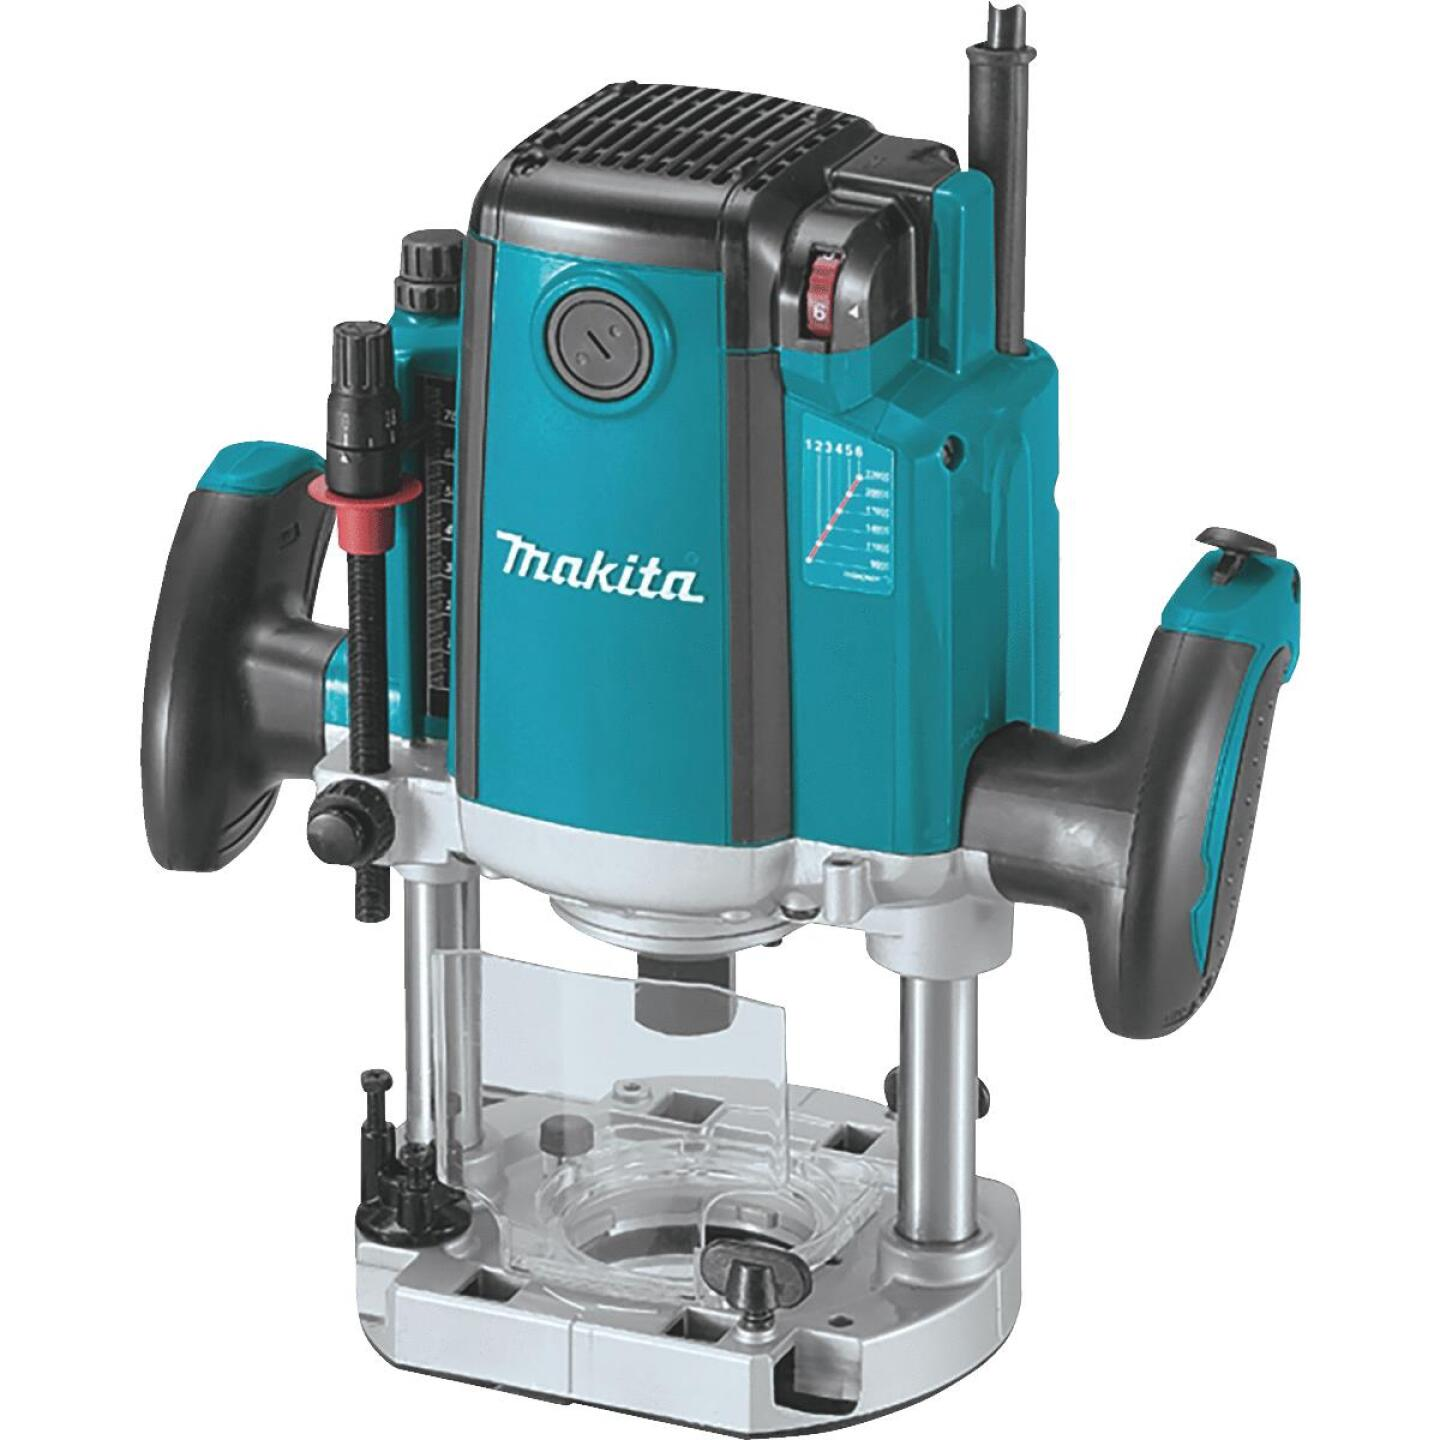 Makita 3-1/4 HP/15A 9000 to 22,000 rpm Plunge Router Image 1